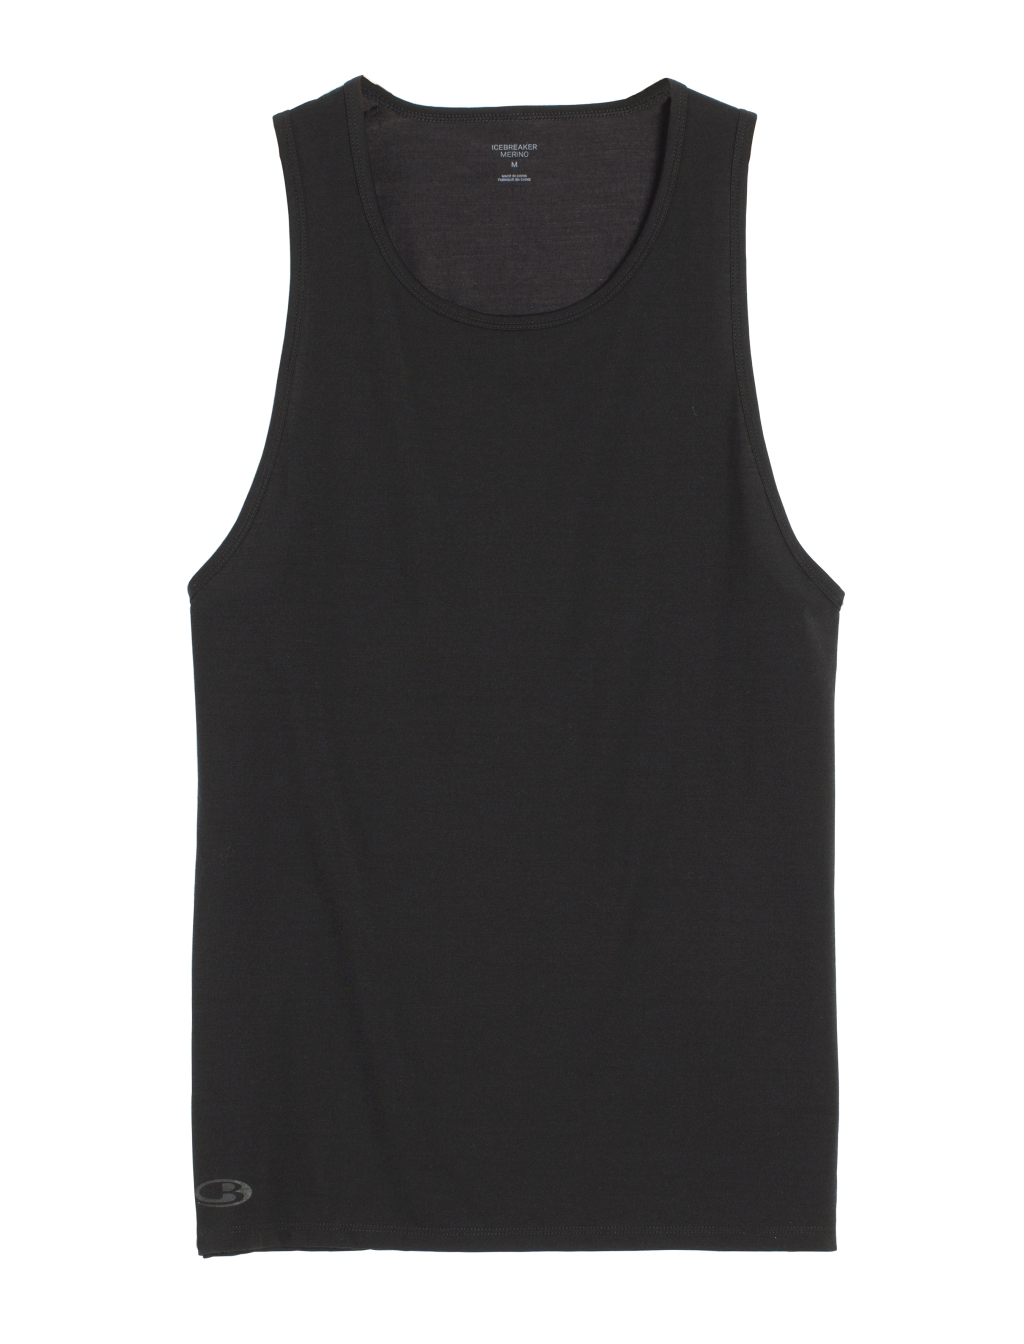 Icebreaker Mens Anatomica Tank Black/Monsoon-30